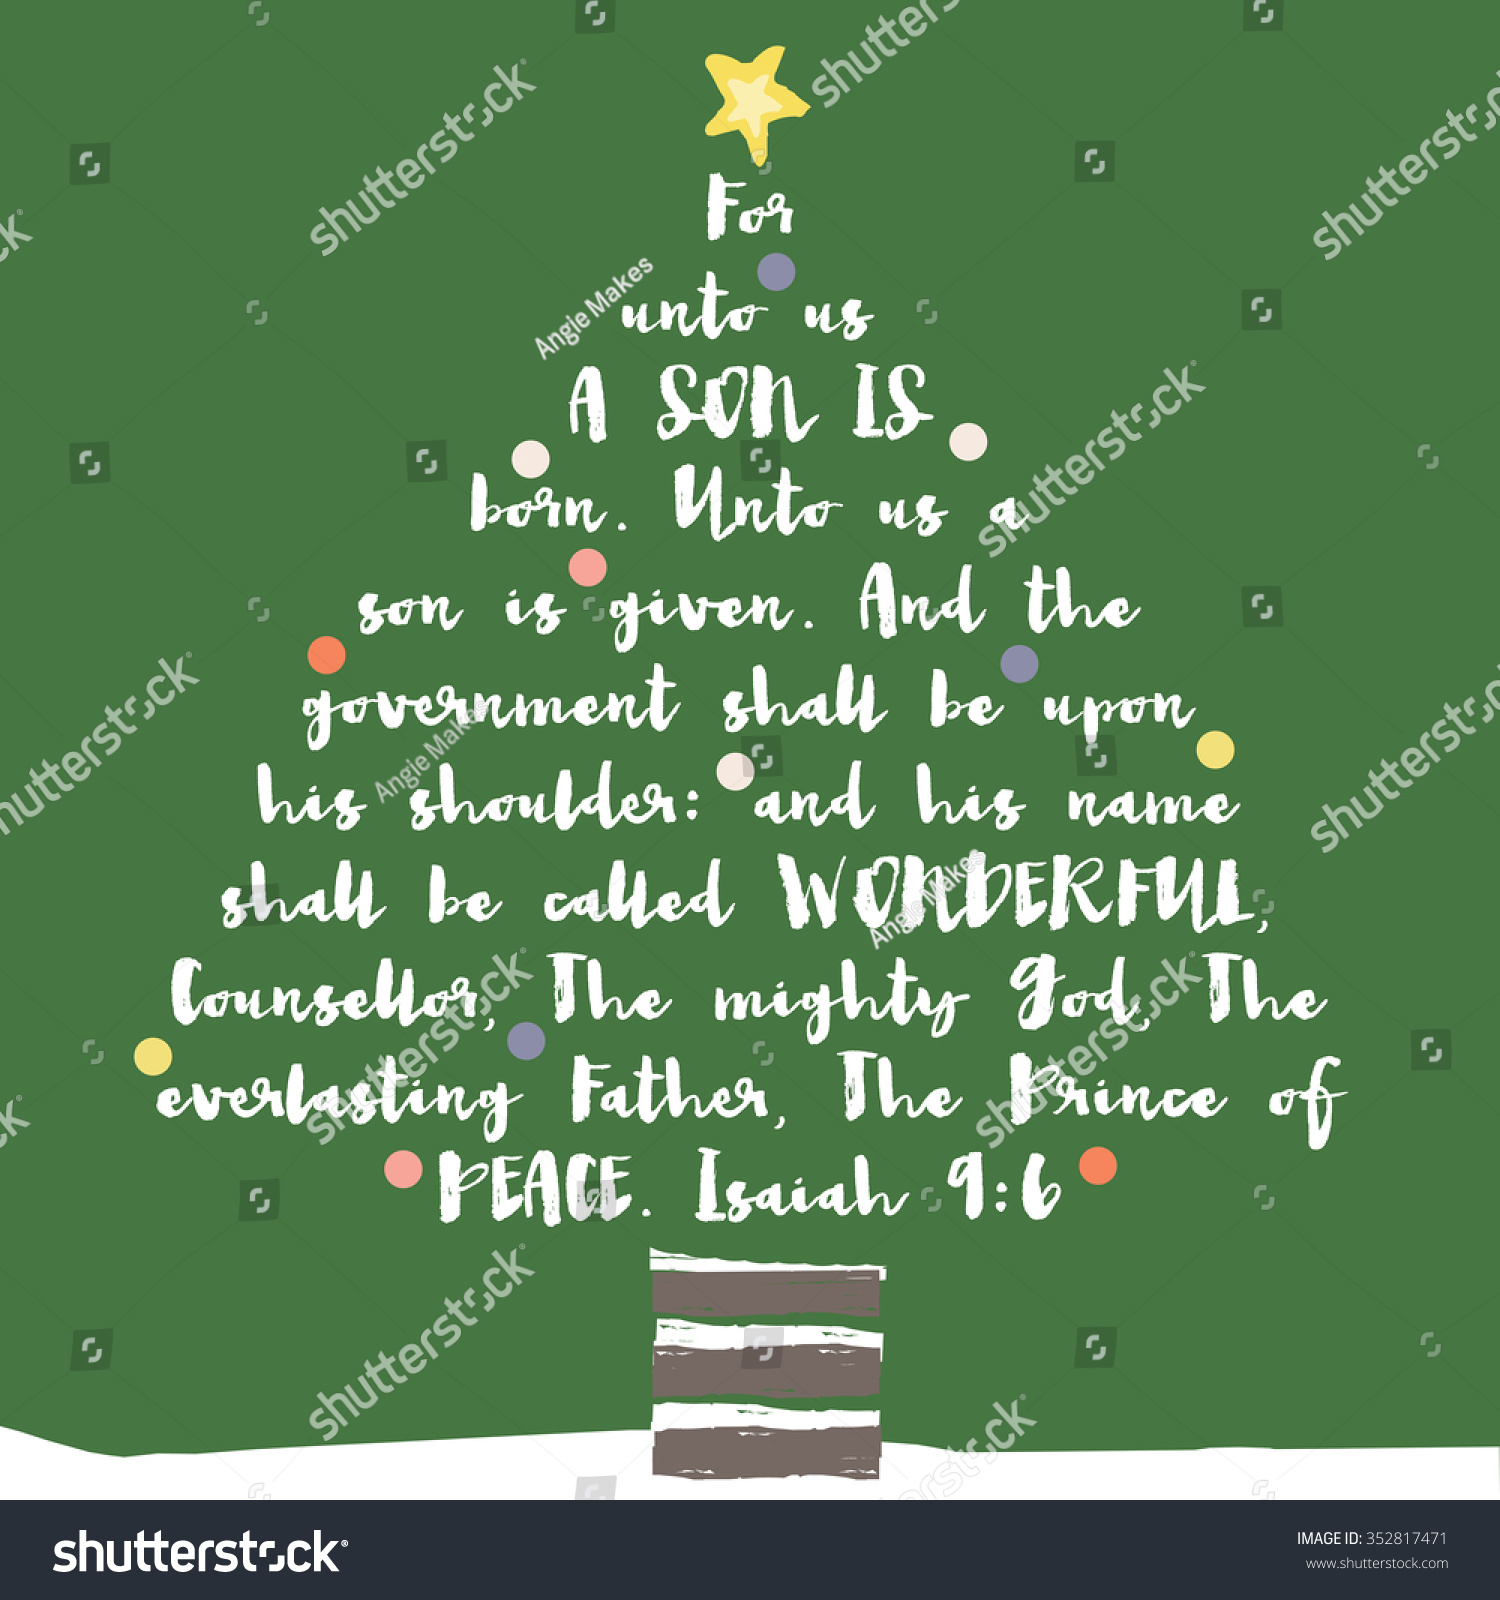 Christian Christmas Greetings.Christmas Tree Typography Bible Verse Christian Stock